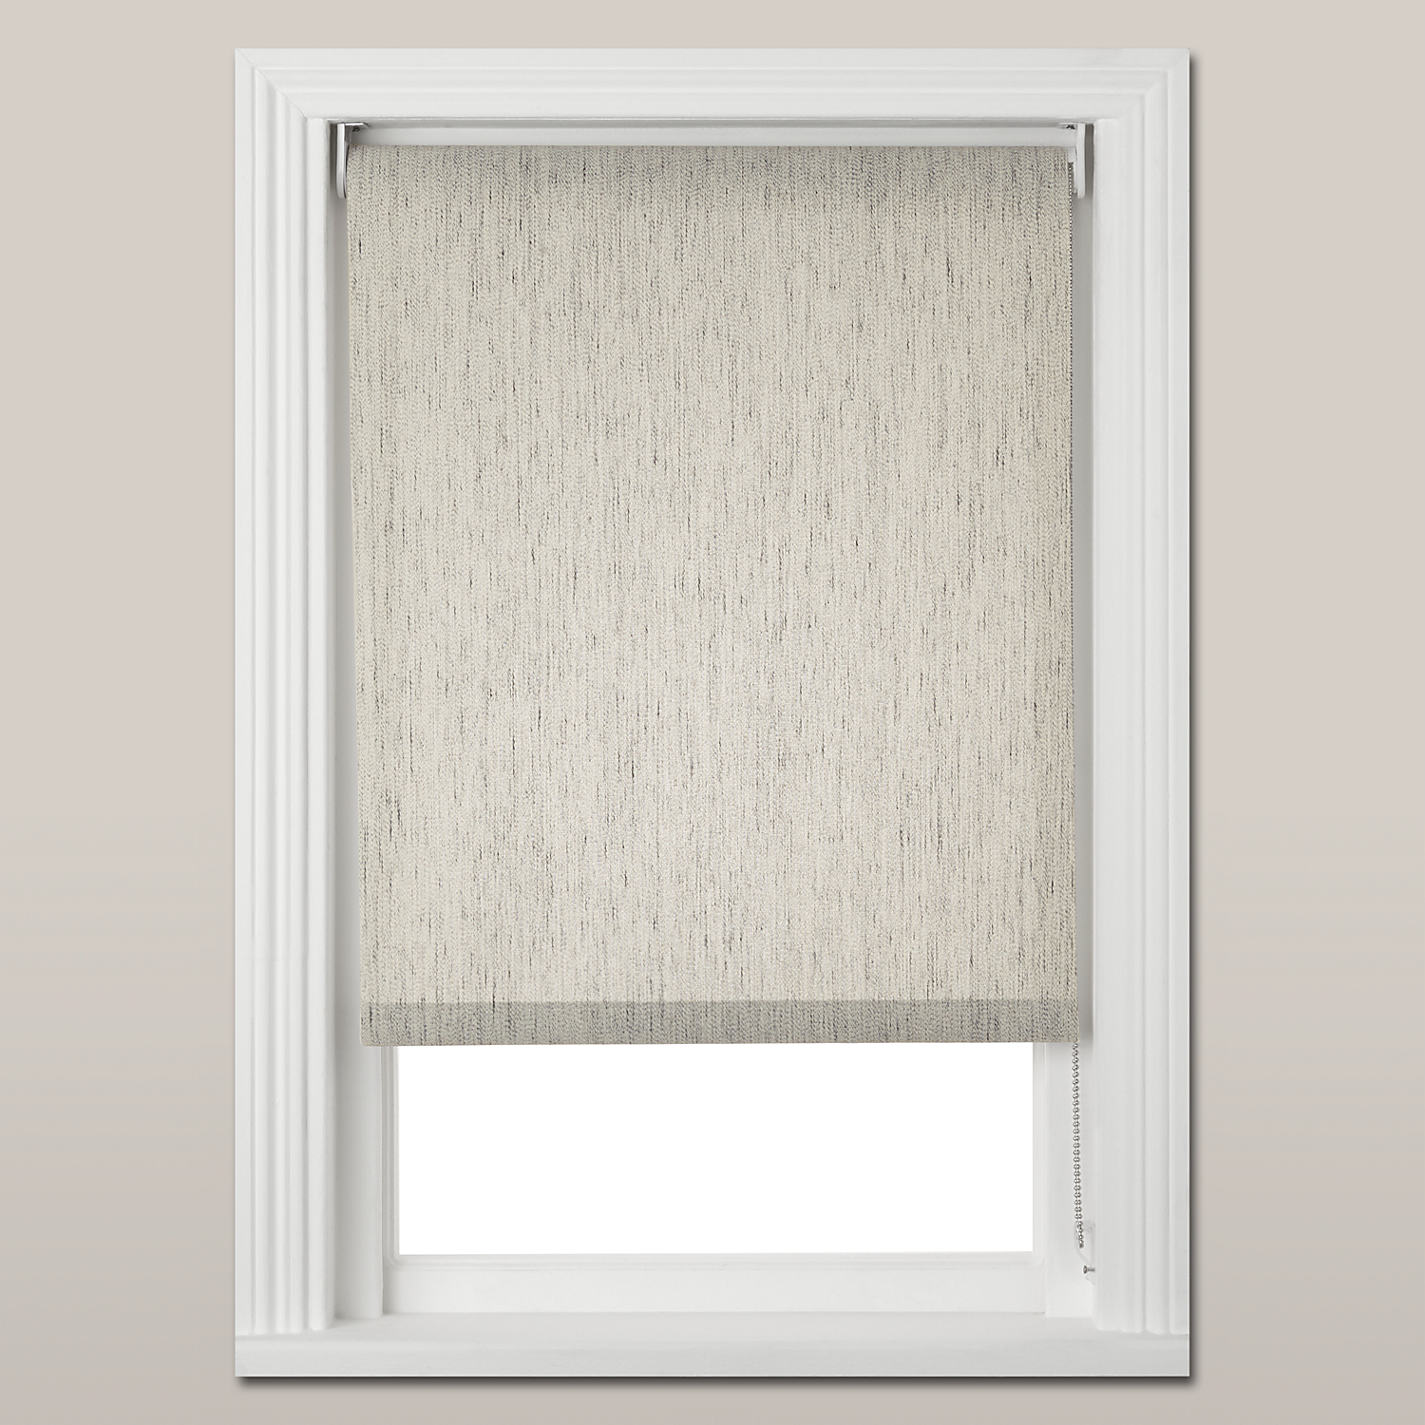 buy design project by john lewis no017 daylight roller blind online at johnlewis